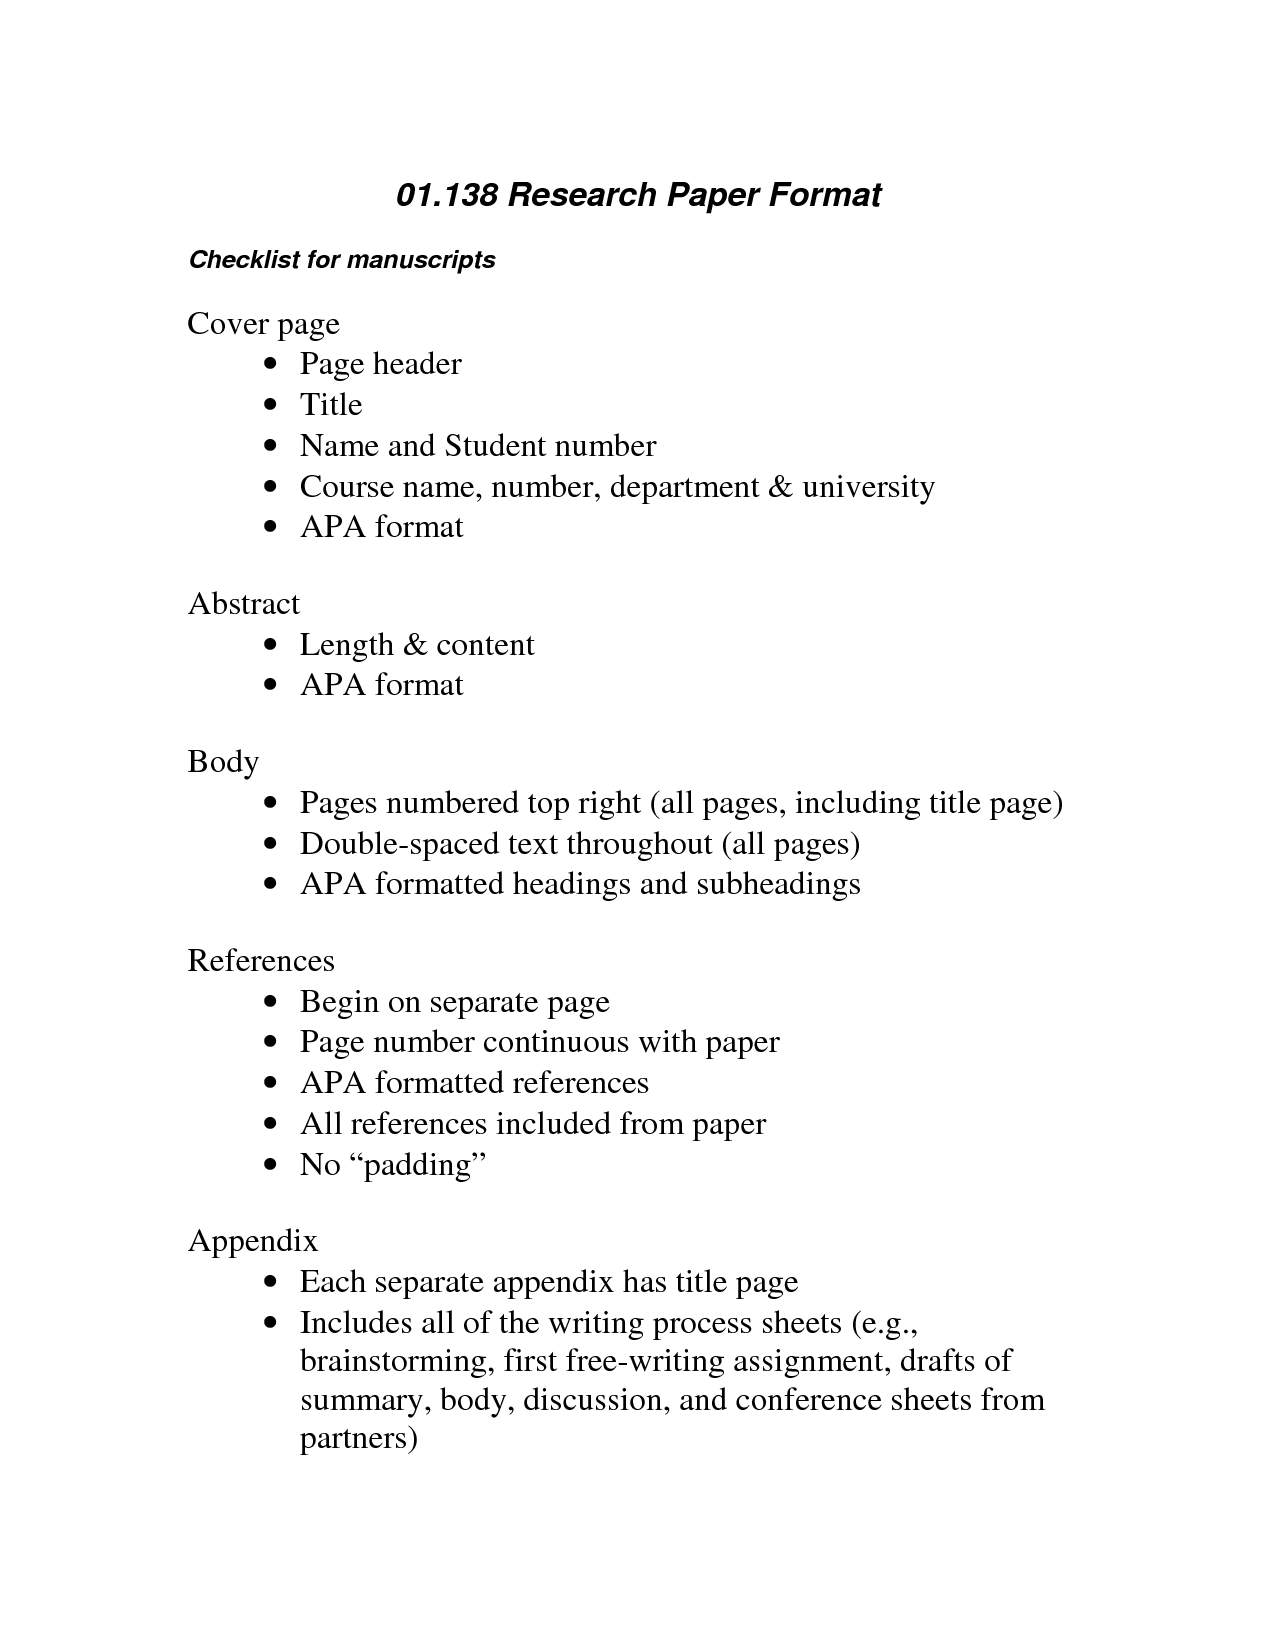 apa style essay paper research paper apa format cover page apa how to use the template for writing papers in apa format for soci ideas about apa